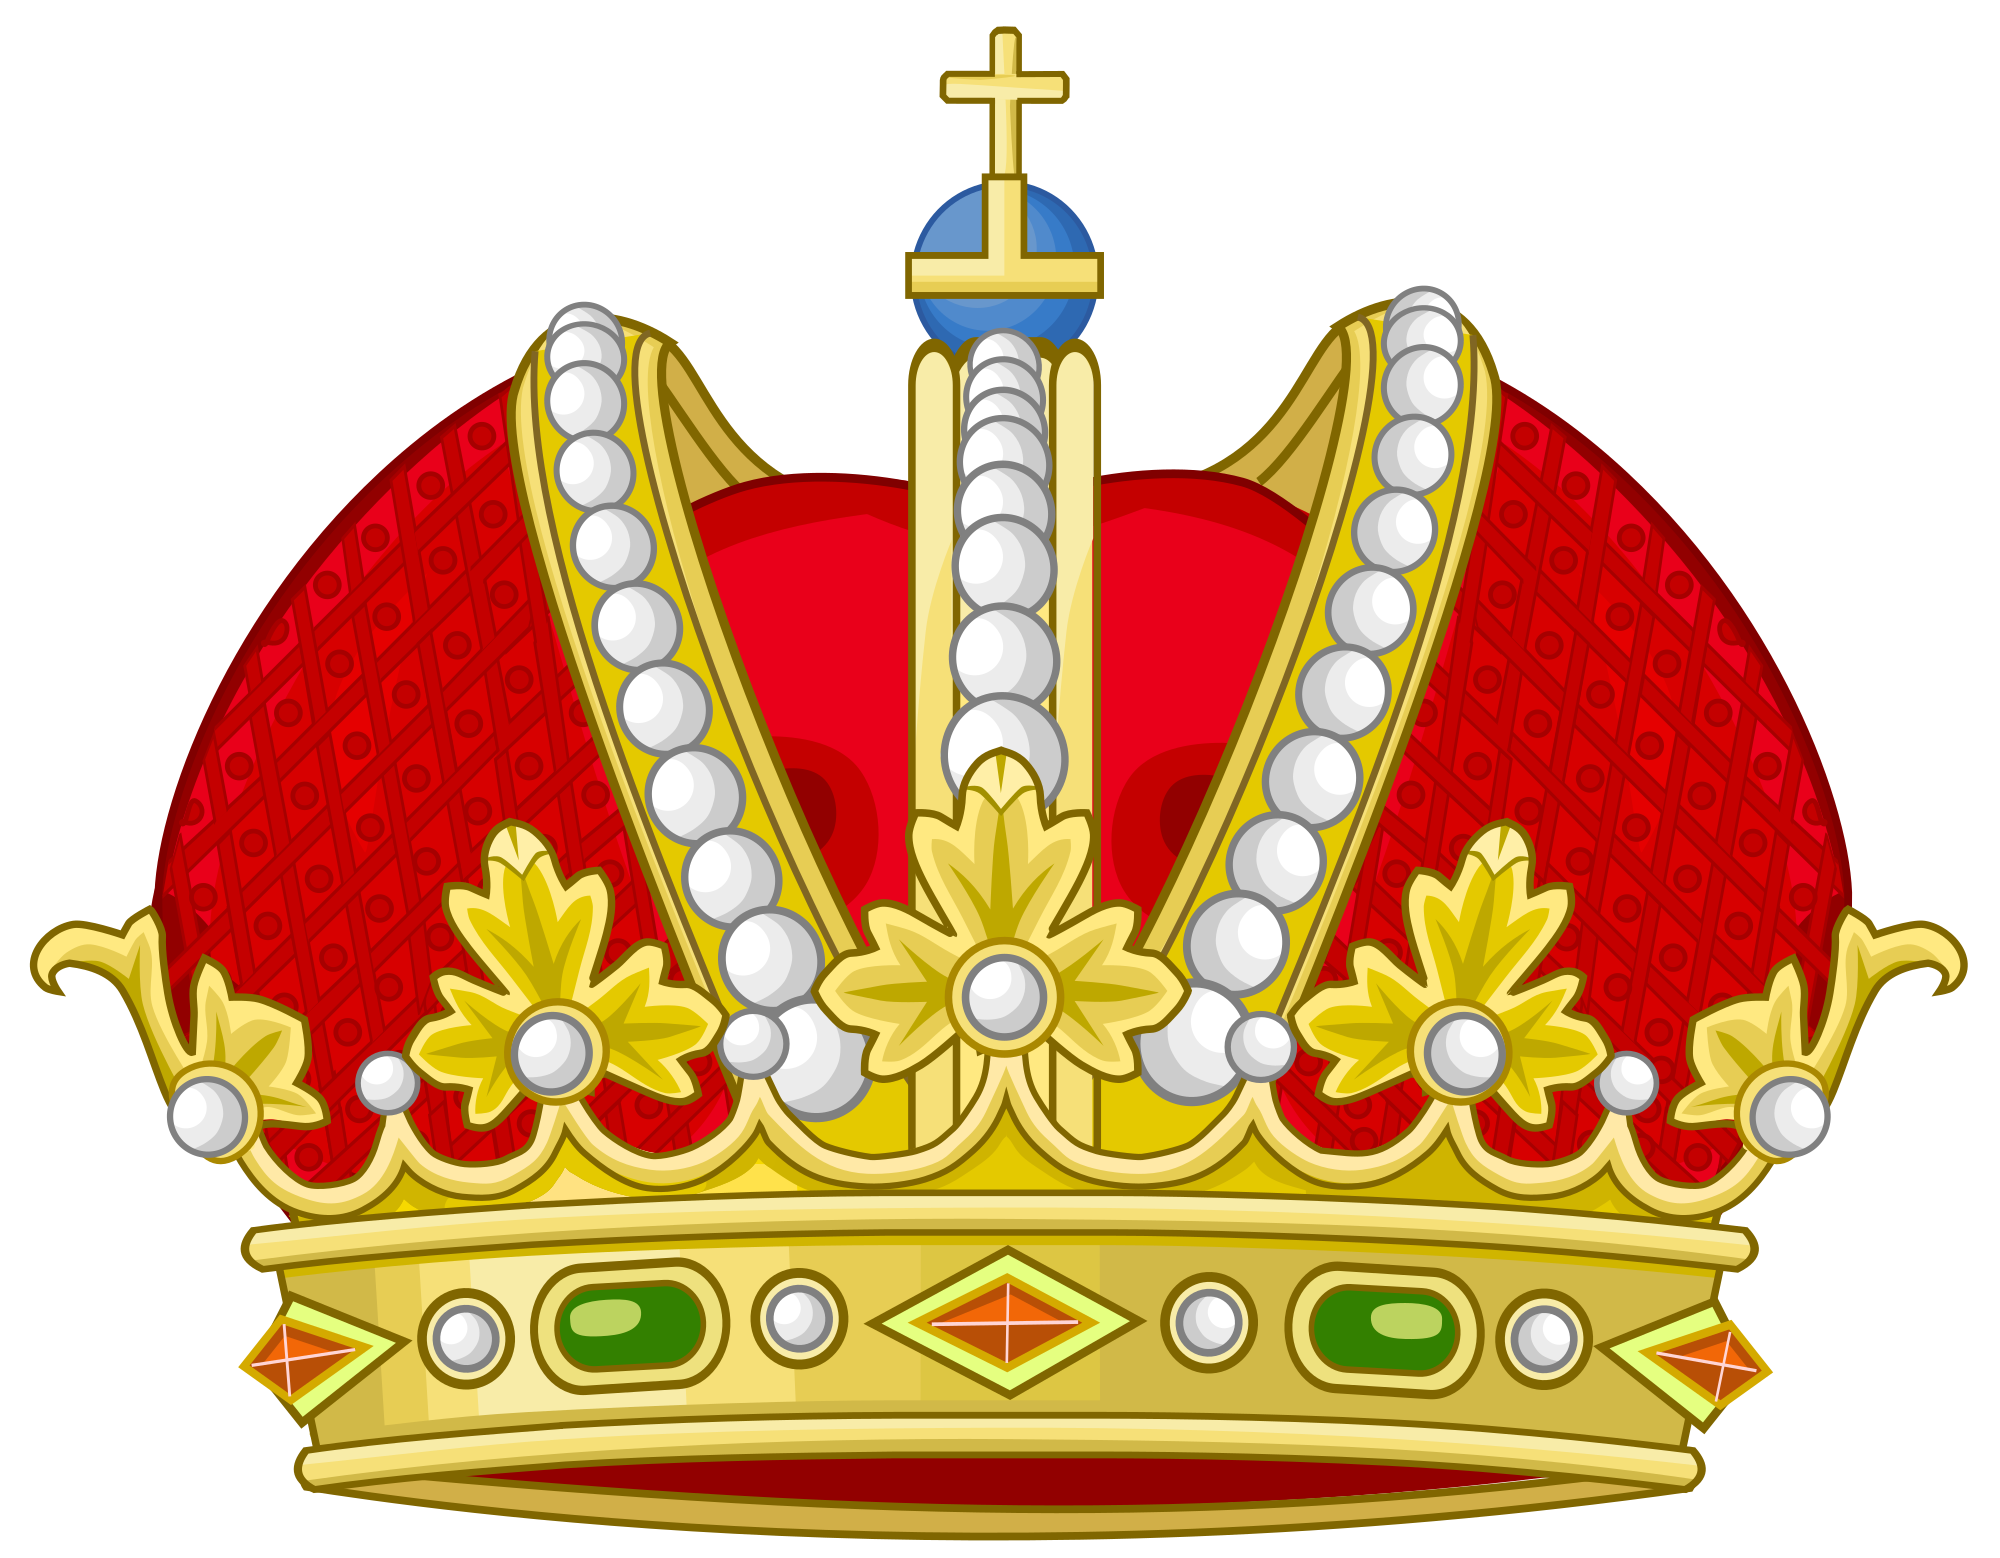 Imperial crown clipart clip library download File:Heraldic Imperial Crown (Spanish National Arms Design).svg ... clip library download